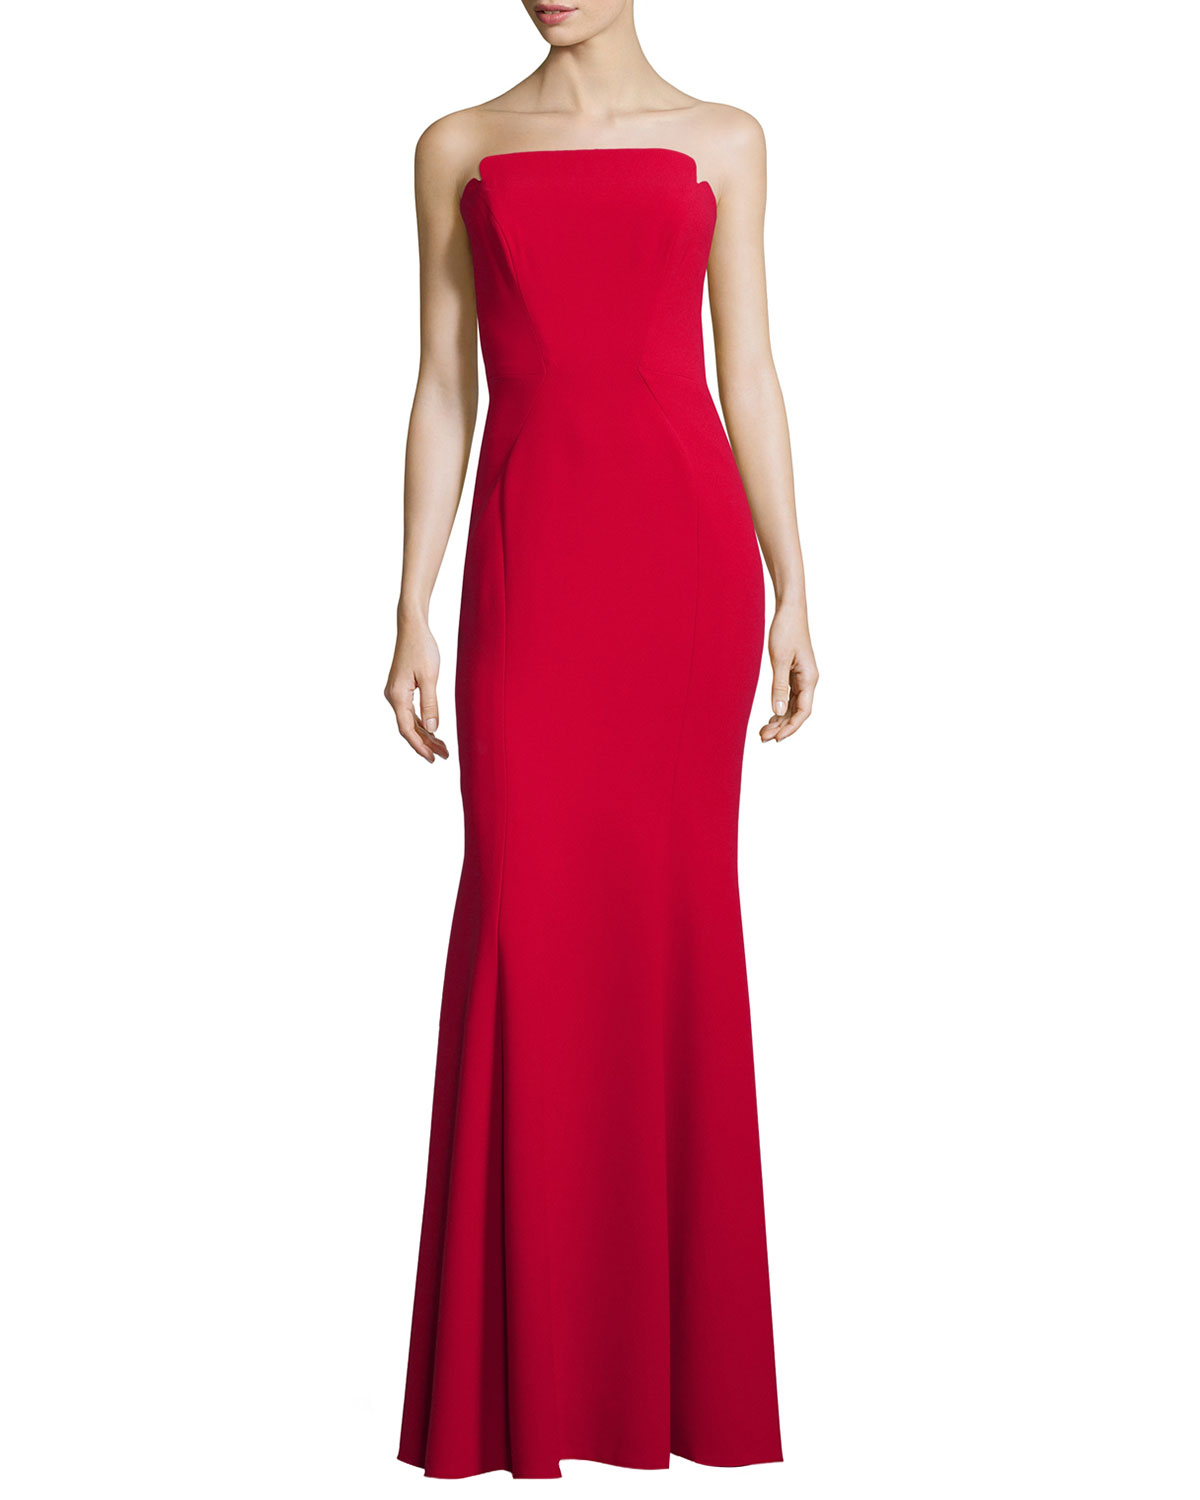 Strapless Gown with Godets, Size: 8, Red - Jill Jill Stuart